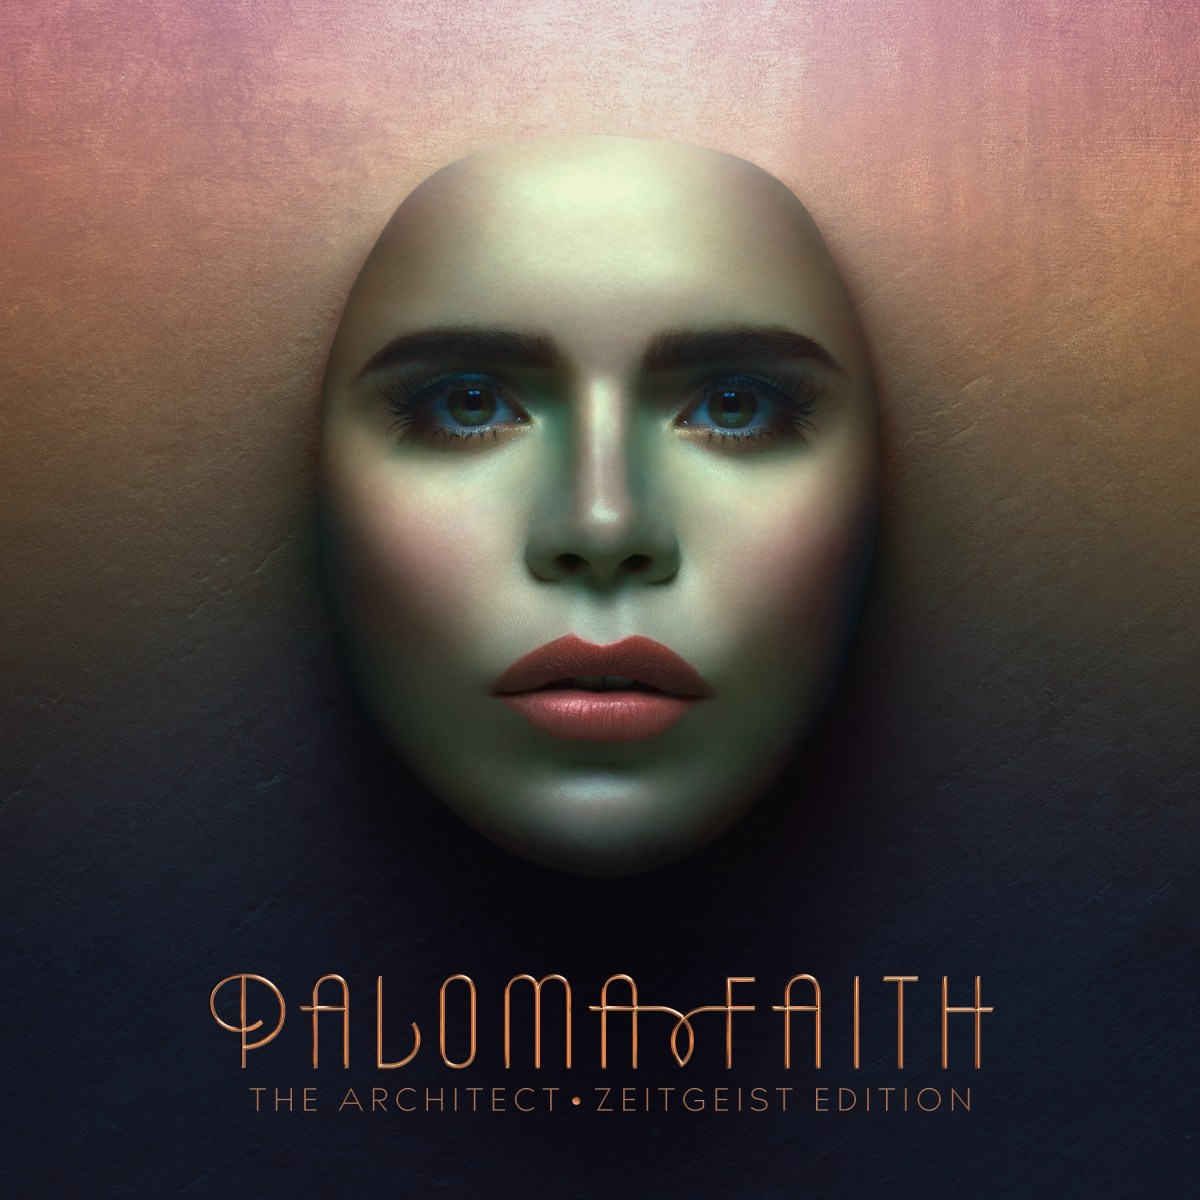 Paloma Faith Releases Brand New Single 'Loyal' Taken From 'The Architect - Zeitgeist Edition'